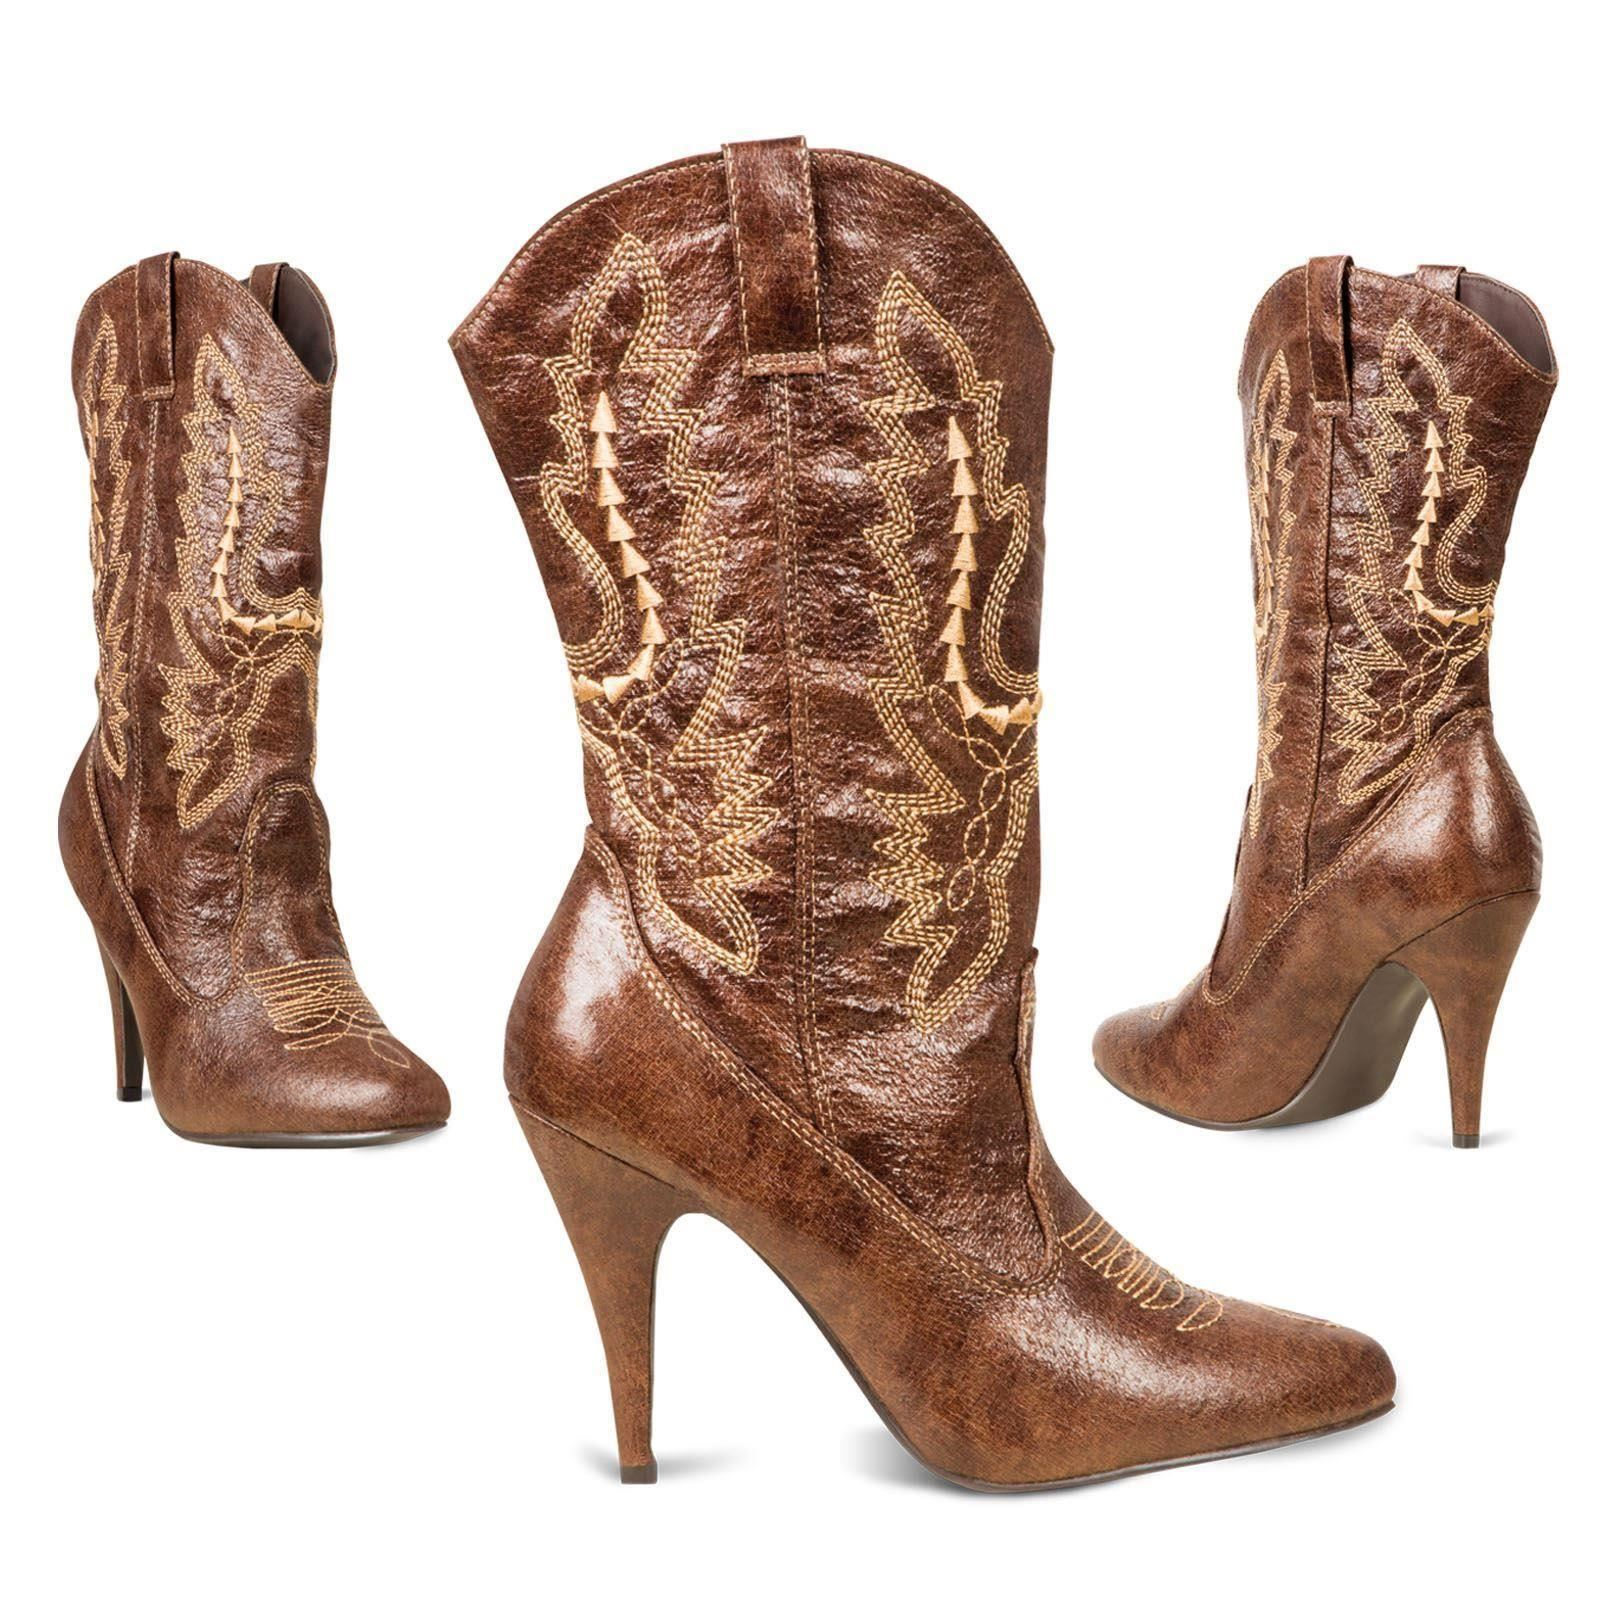 Fantastic Brown Dress Boots For Men - Hairstyle For Women U0026 Man